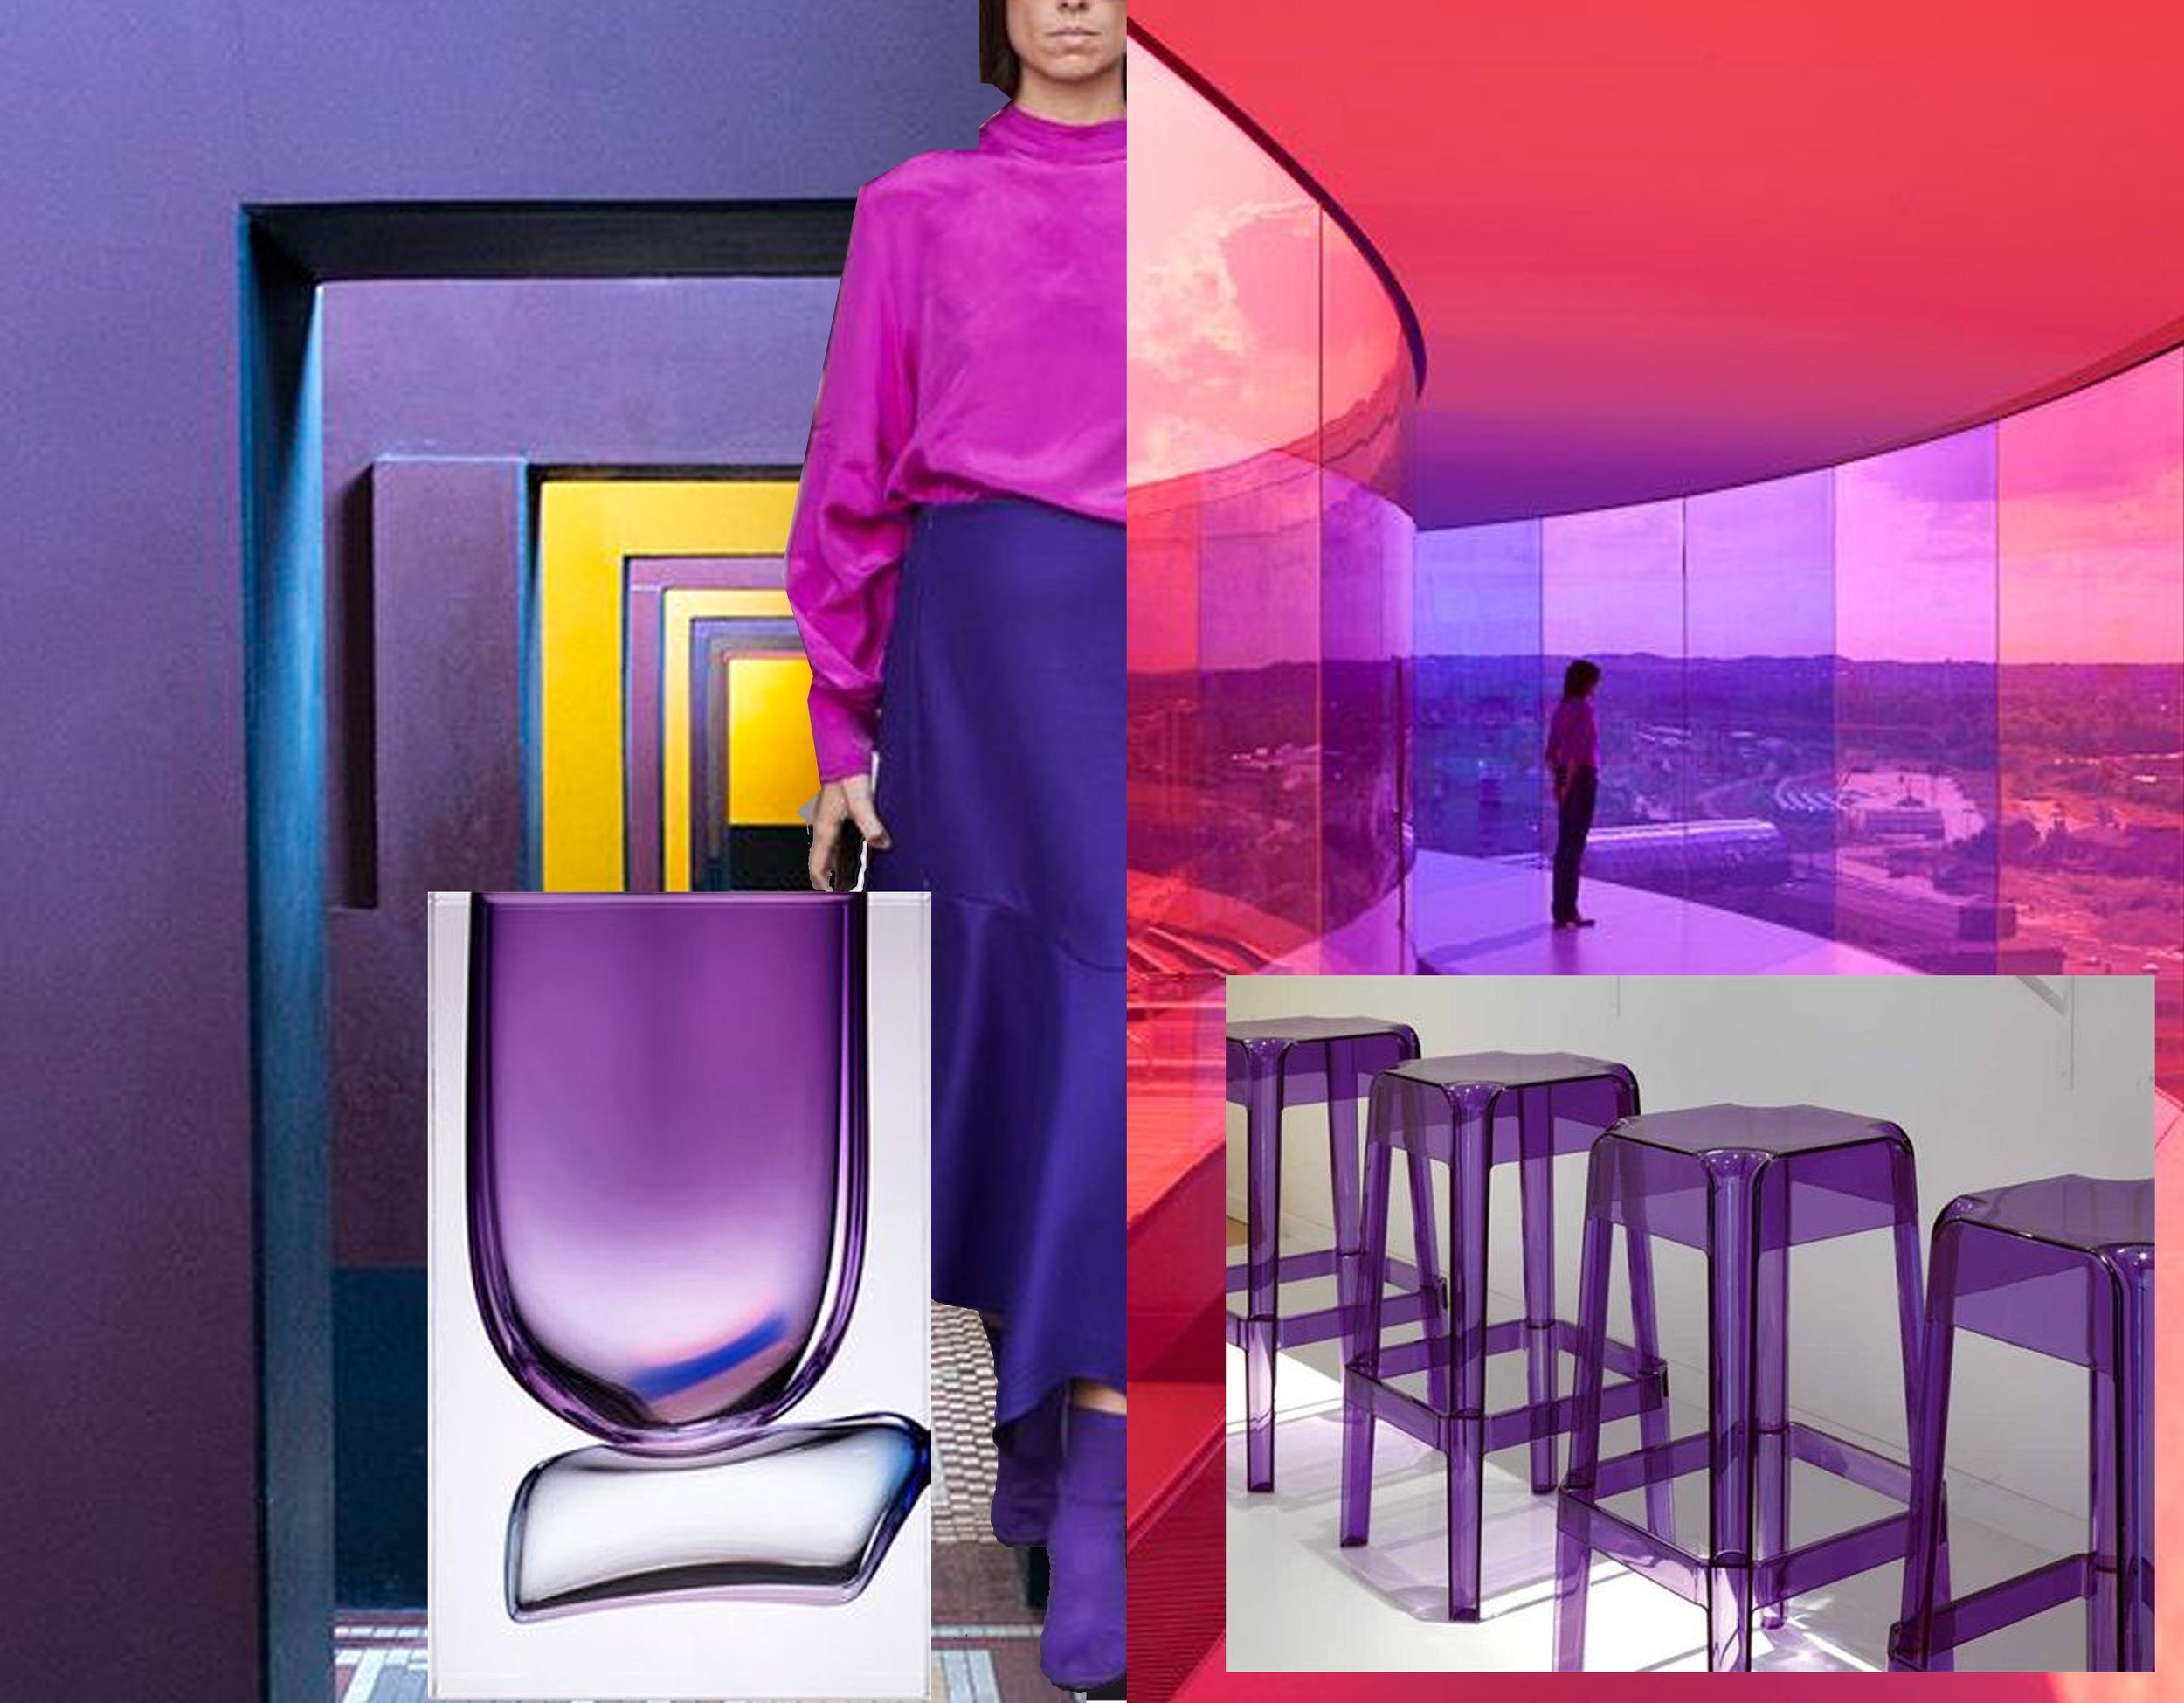 Thorvaldsen Museum  Denmark- glass vase  Anna Torfs  - street fashion via  Who What Wear  - Rainbow Panorama colored walkway by  Olafur Eliasson.  Photo: Quintin Lake - Rubi stool Pedrali via  Archiproducts